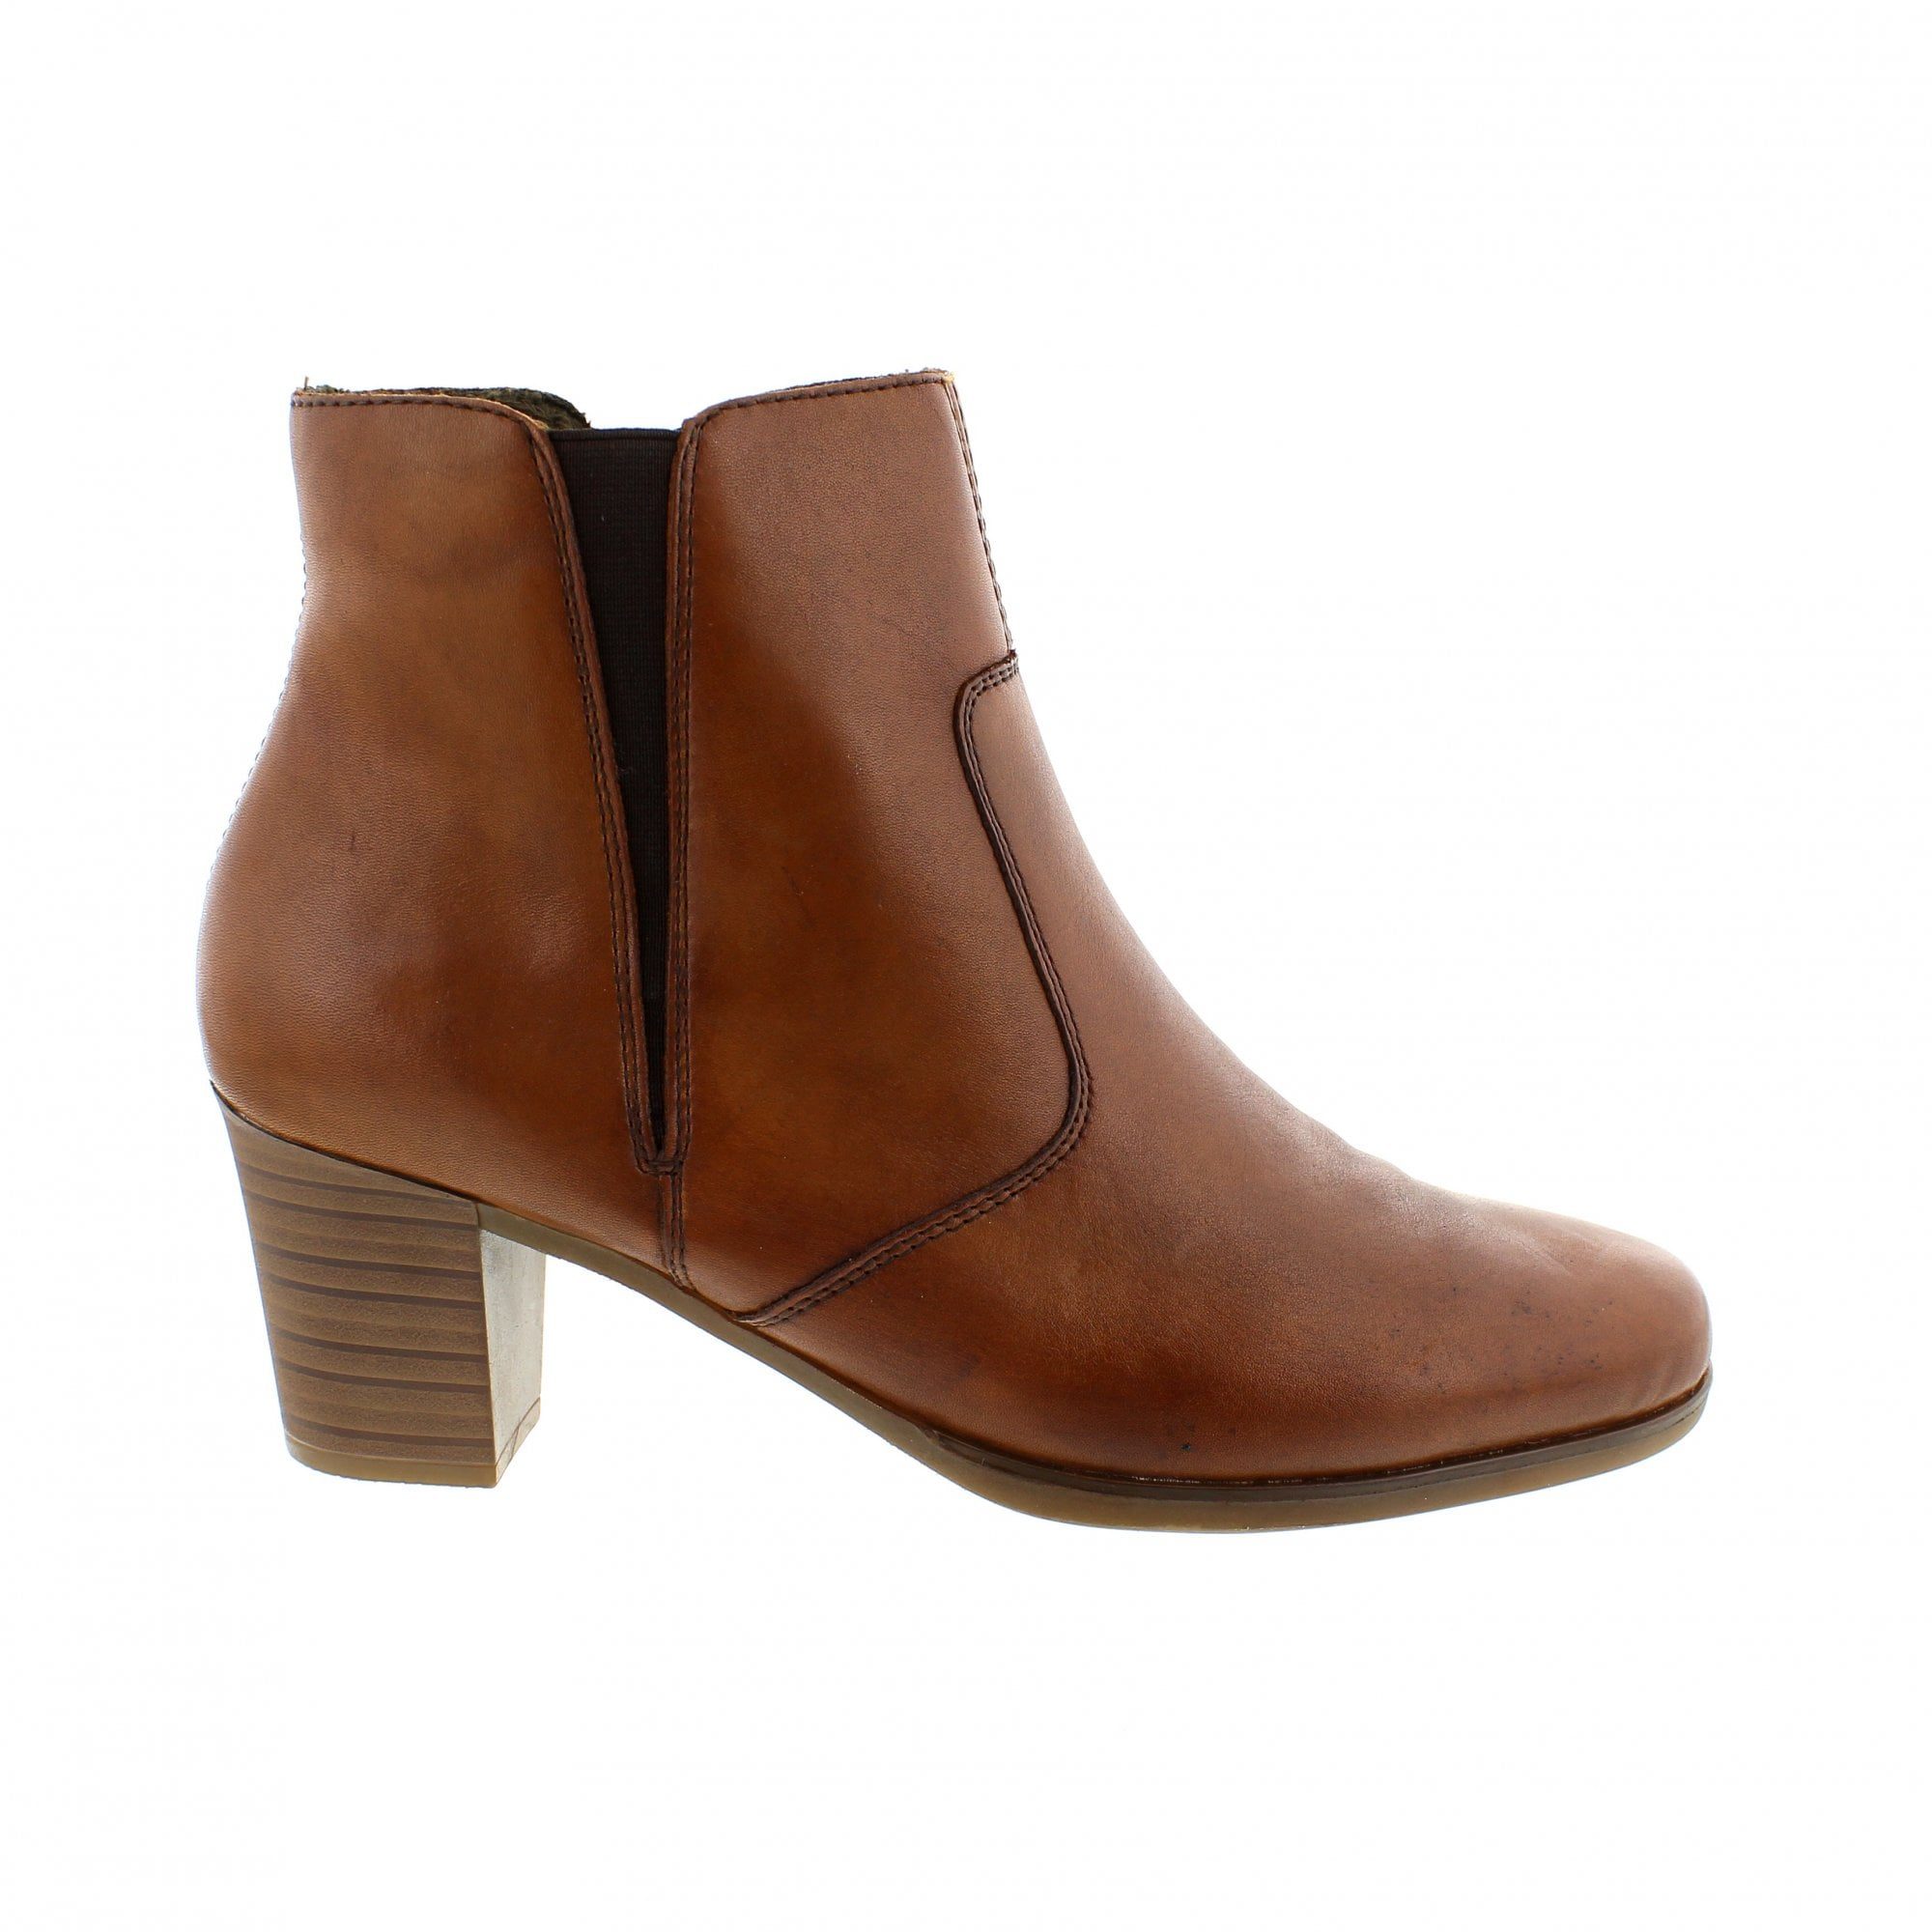 promo code 15690 ef27b Rieker Y8989-22 Womens Tan Ankle Boots